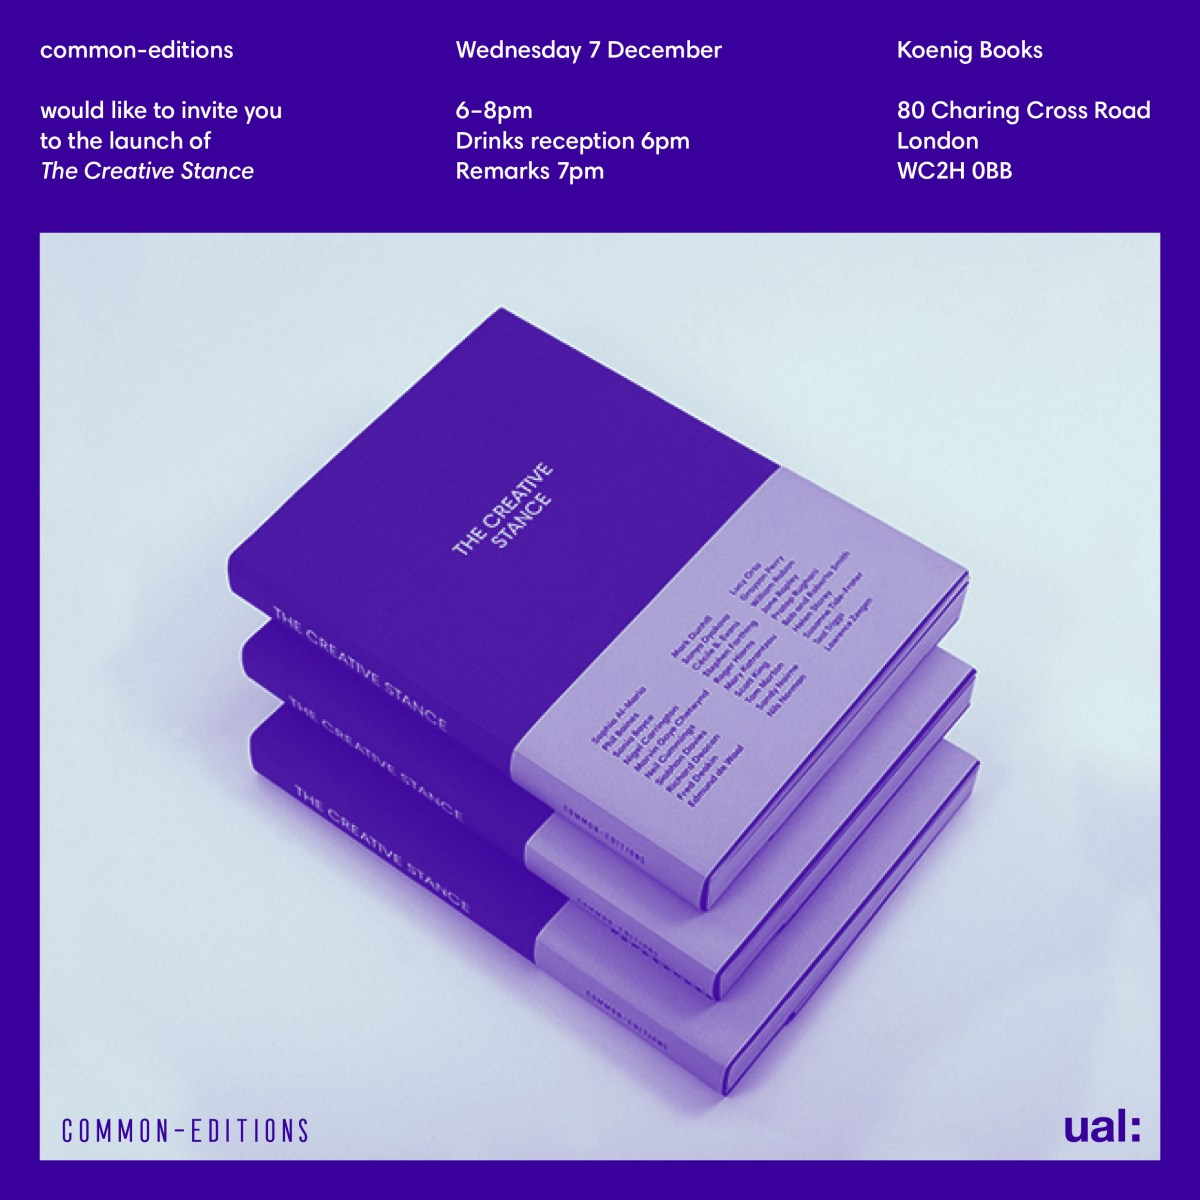 """Launch of a collection of essays """"The Creative Stance"""", a UAL & commons-edition 7 Dec 2016"""